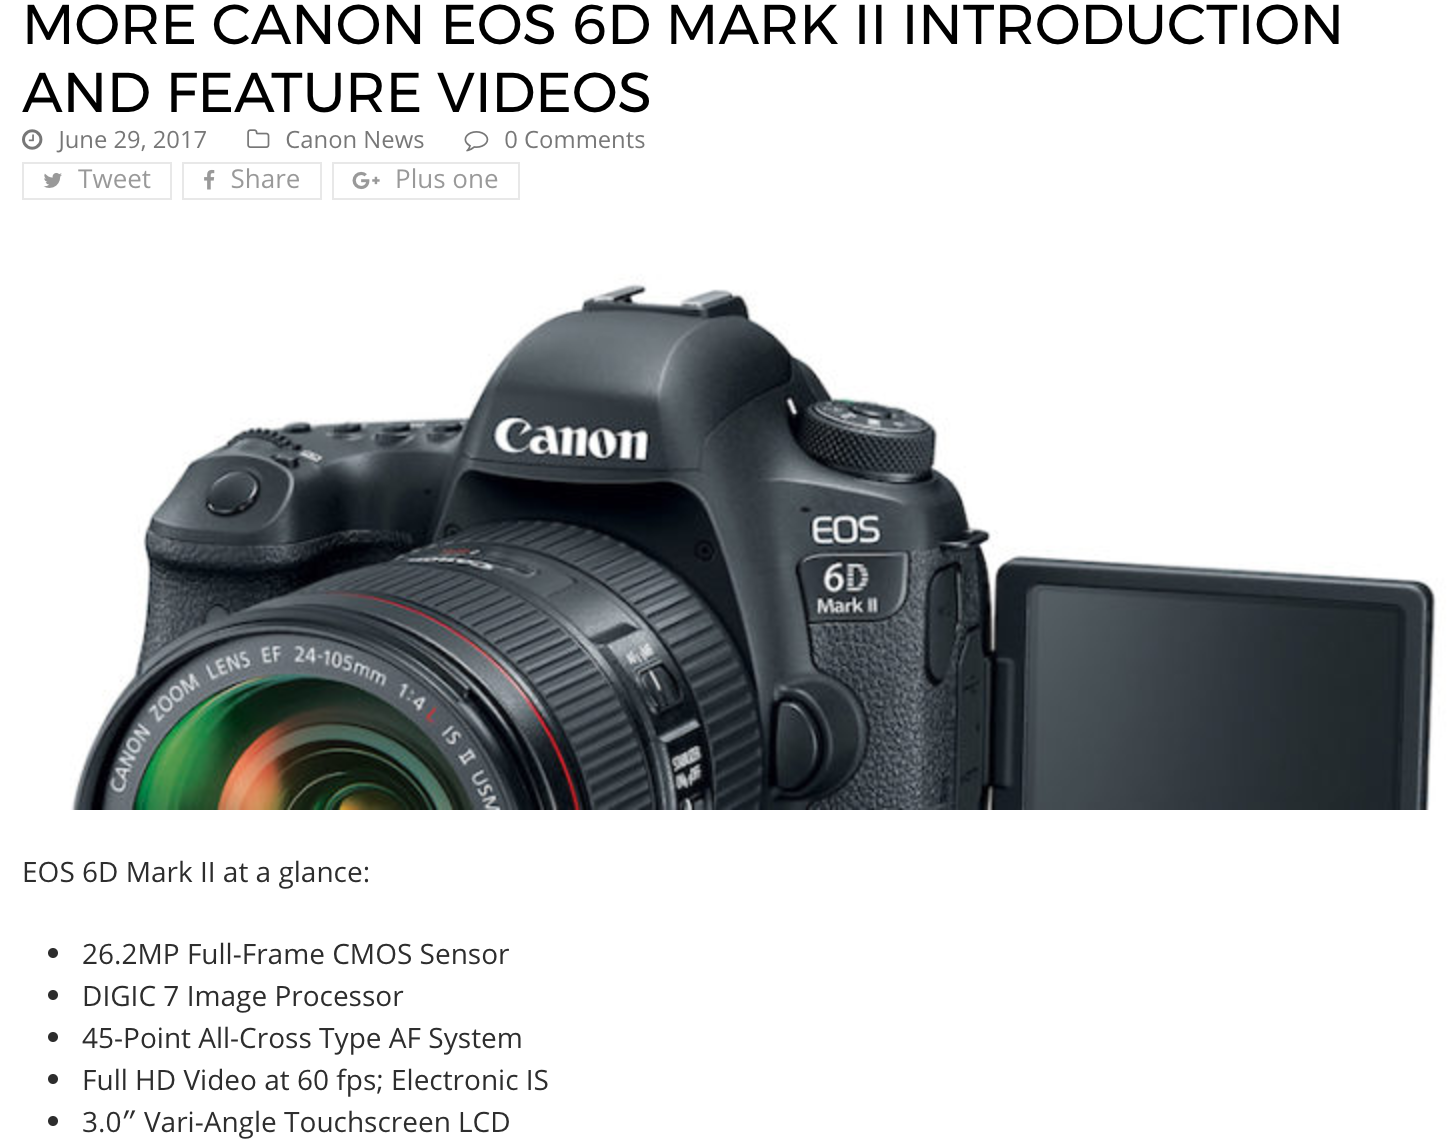 http://www.canonwatch.com/canon-eos-6d-mark-ii-feature-videos-stuff/